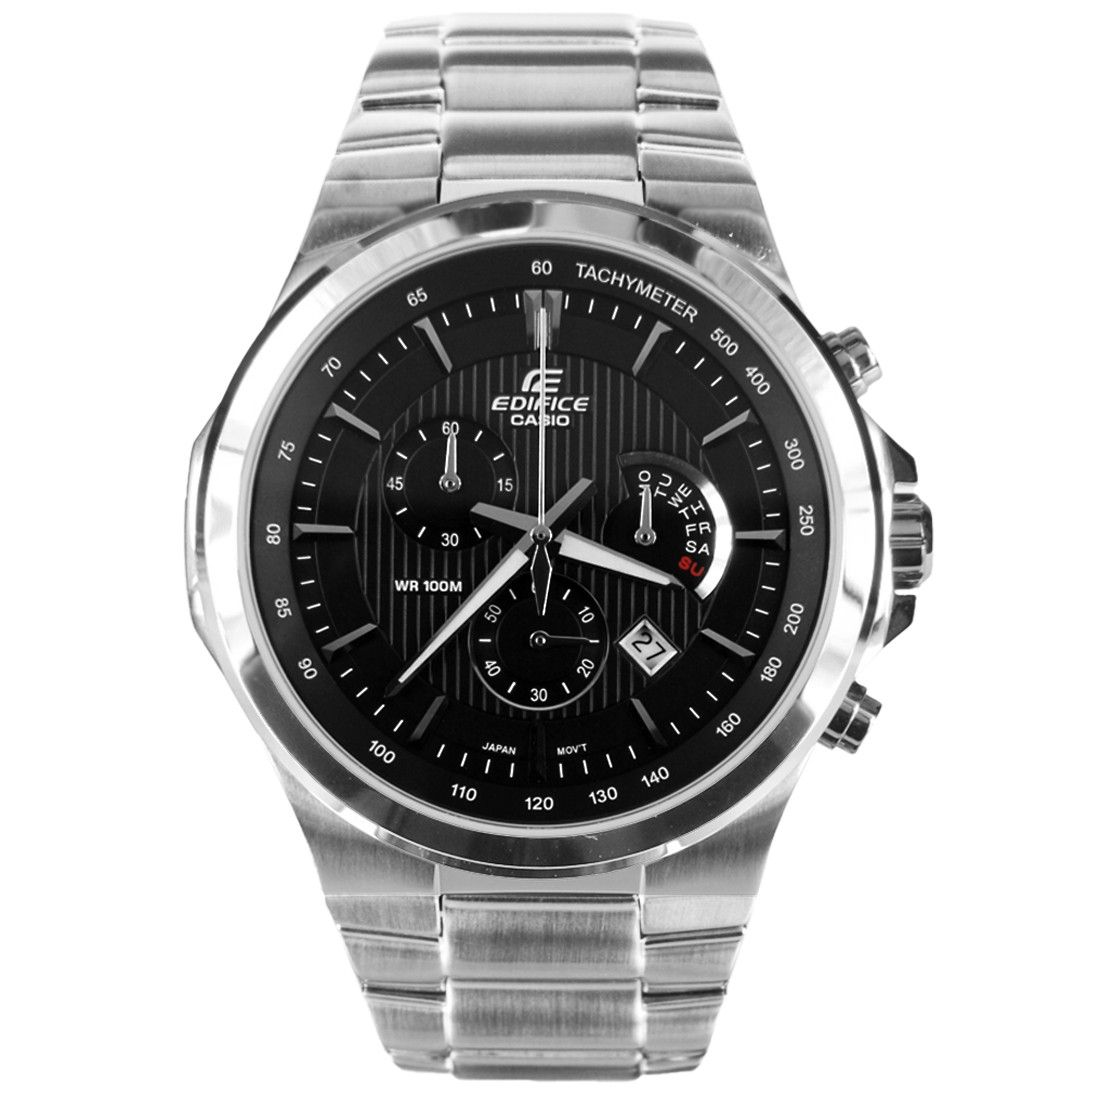 Casio Edifice Chronograph Men's Sports Watch EFR500D1AV